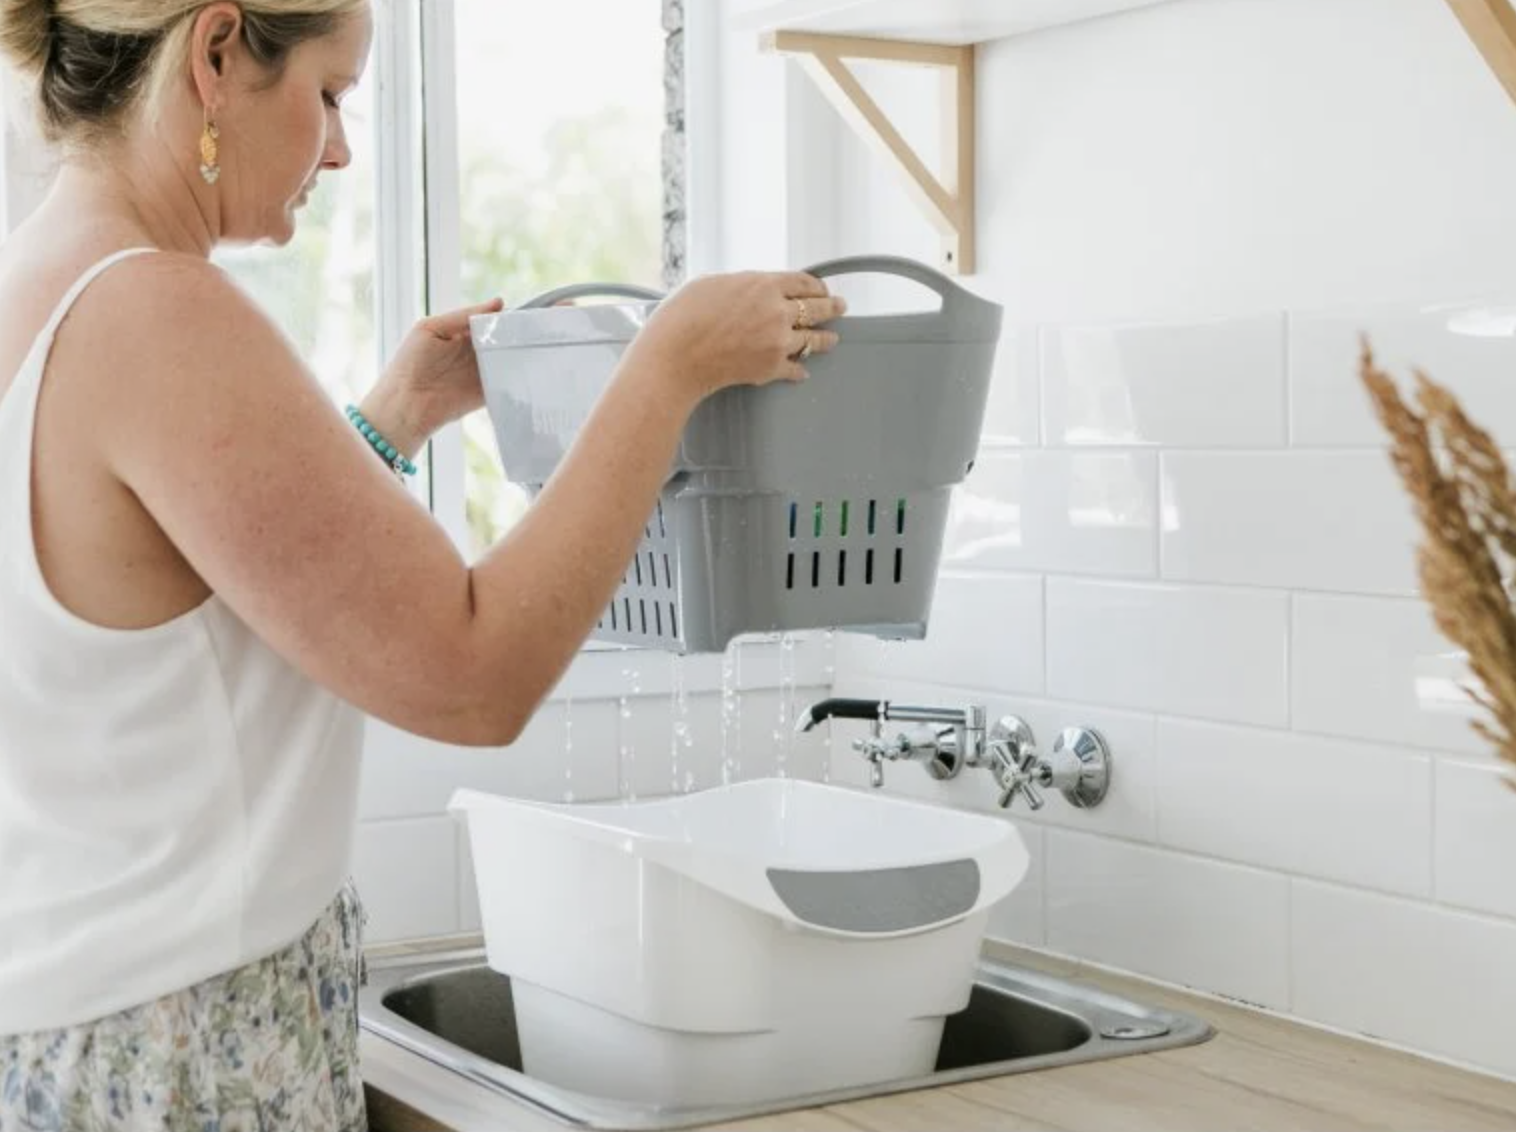 a model lifts the hand washing strainer out of the bucket